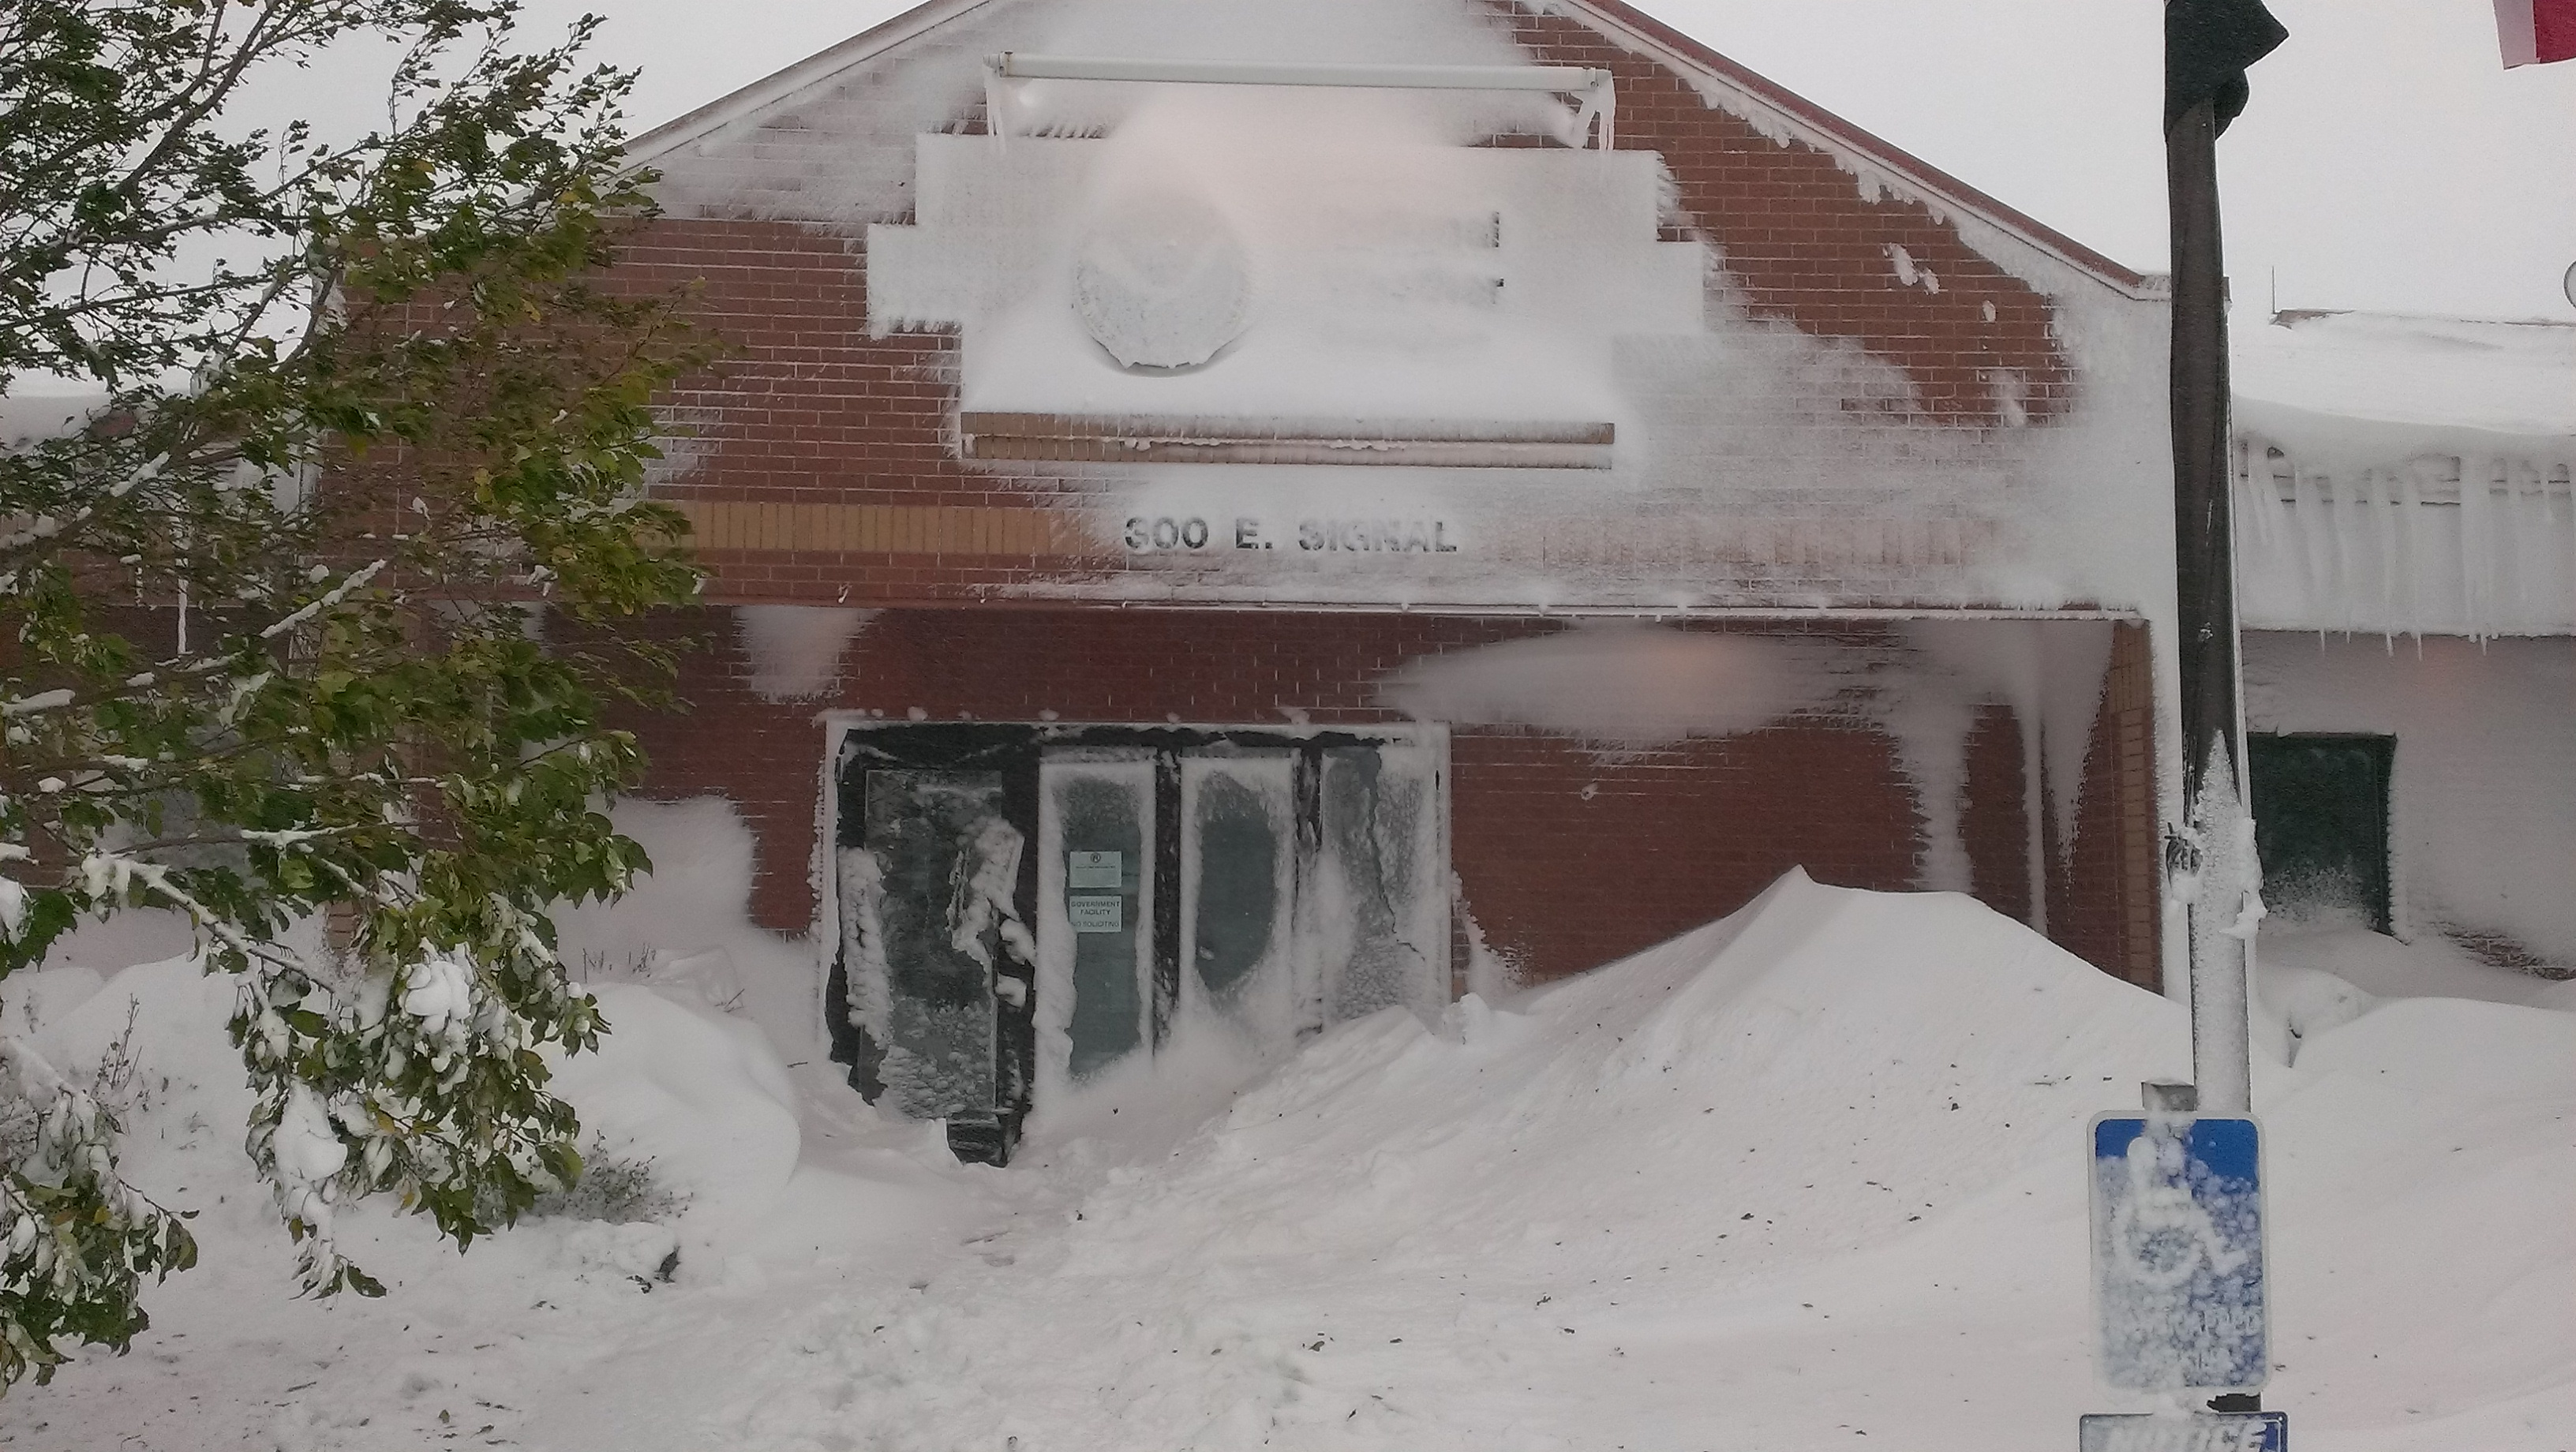 October 3, 2013 image of the NWS Rapid City Office during the historic blizzard